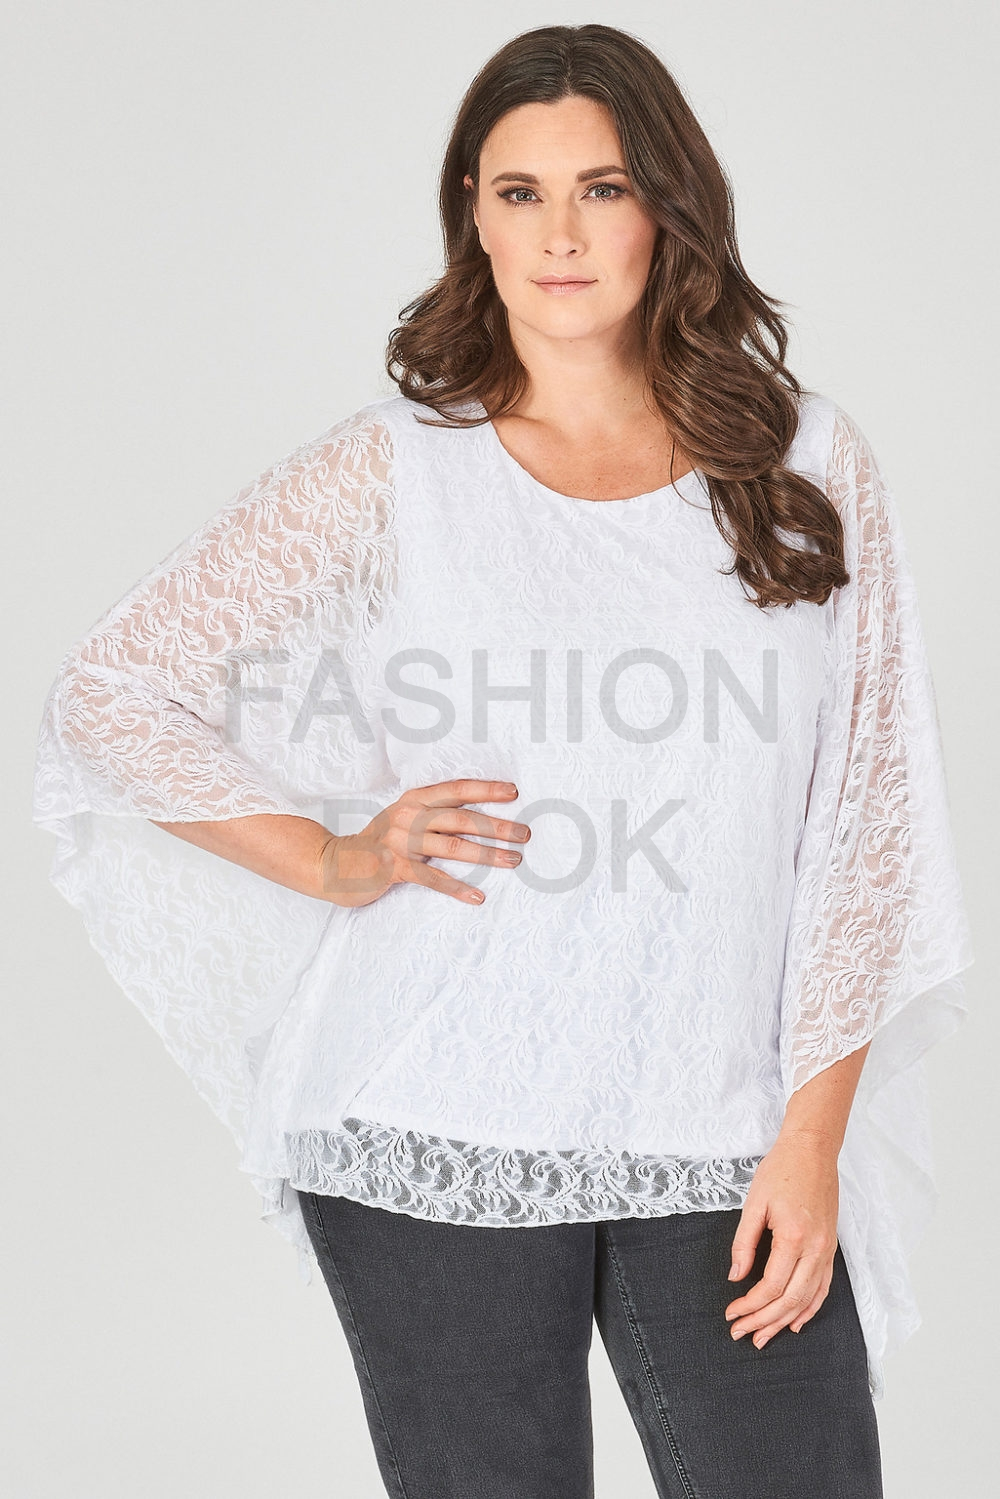 fashionbook wholesale plus size lace box top ivory